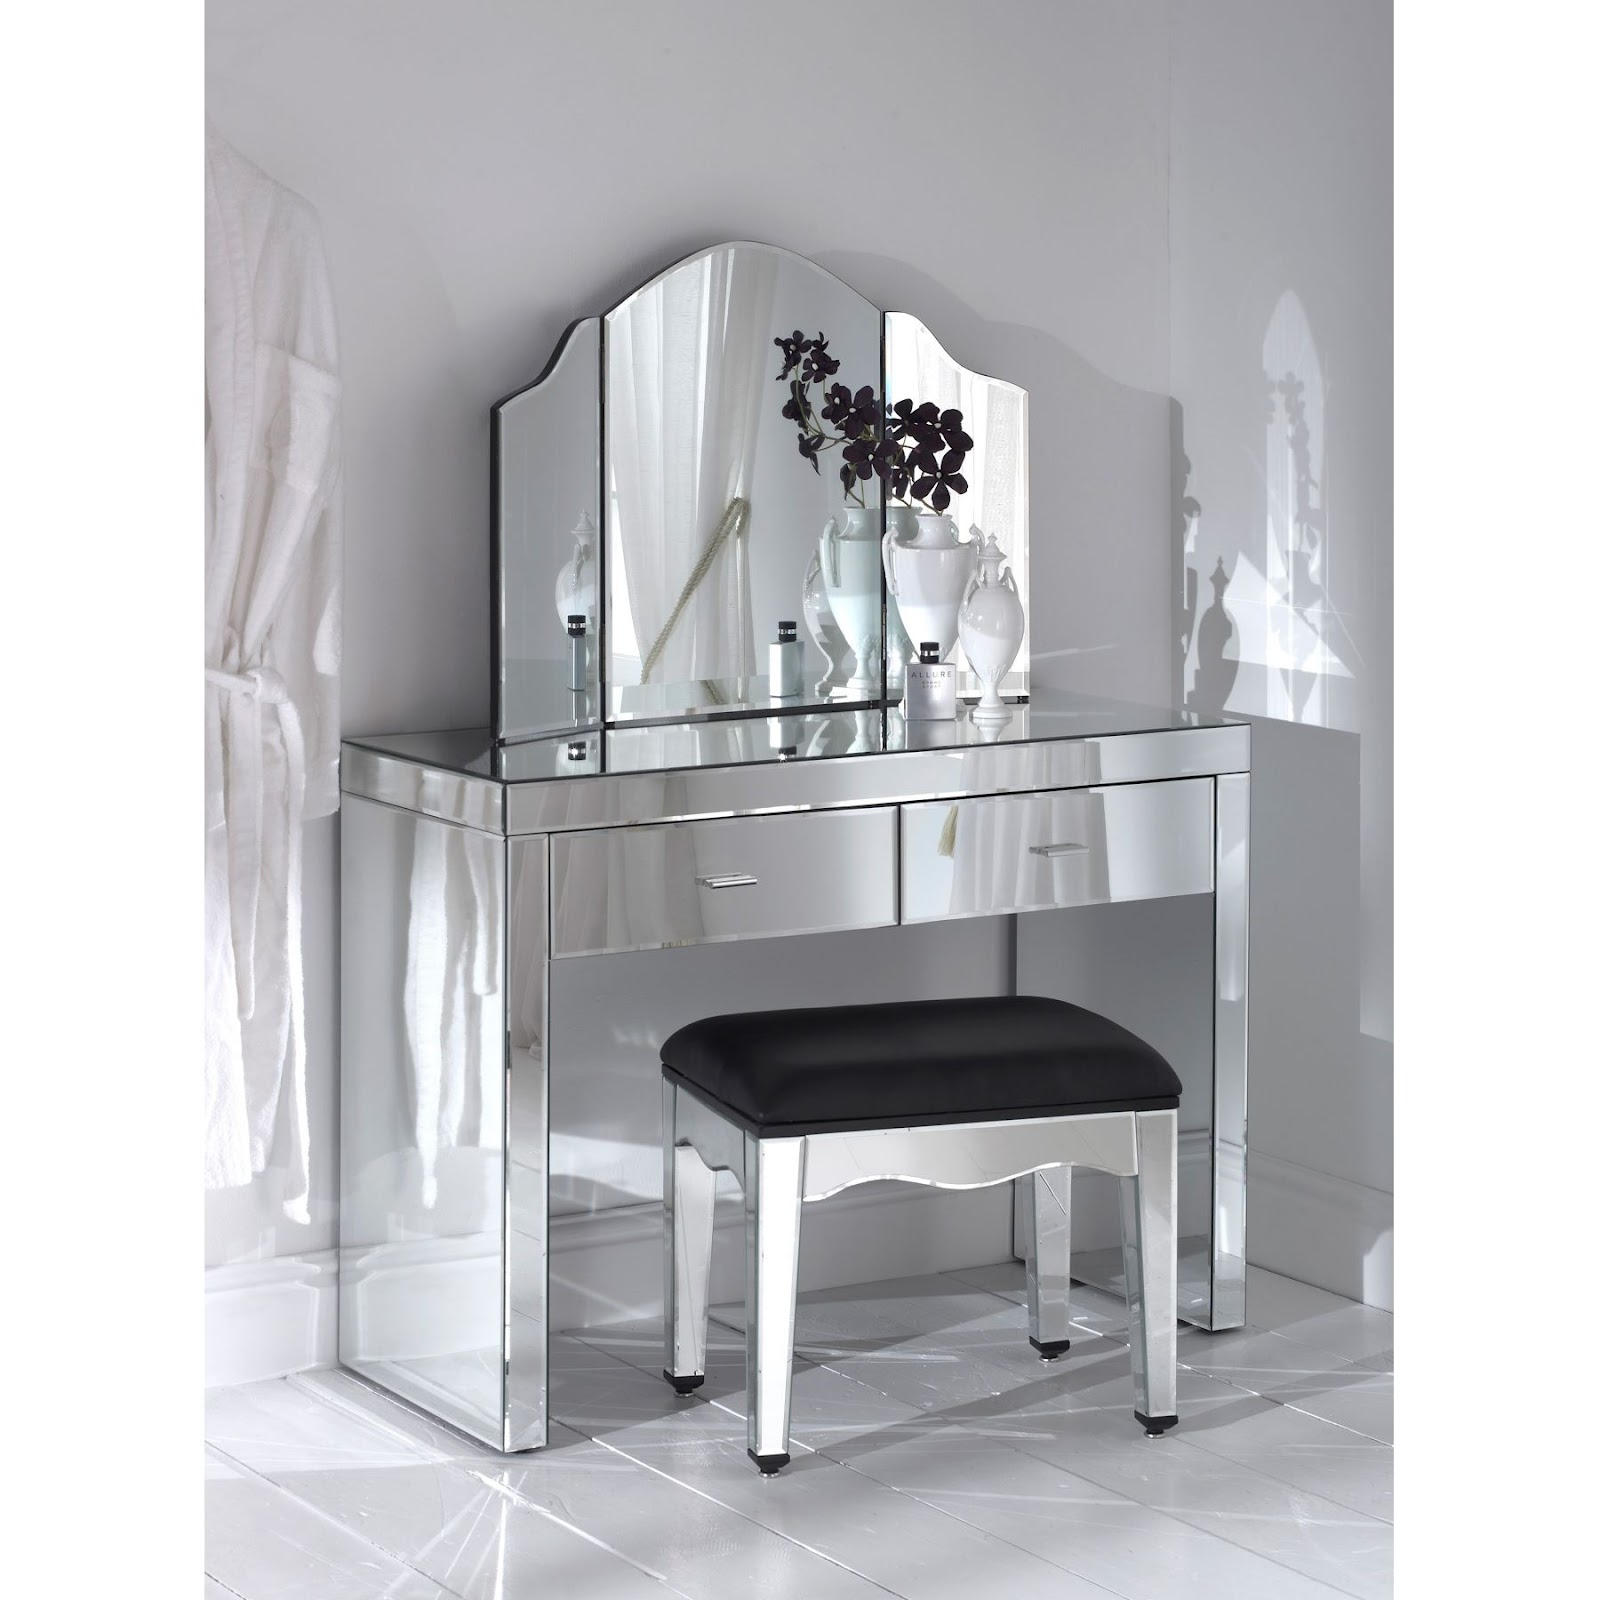 Vanity With Mirror And Chair Modern Dressing Table Furniture Designs An Interior Design